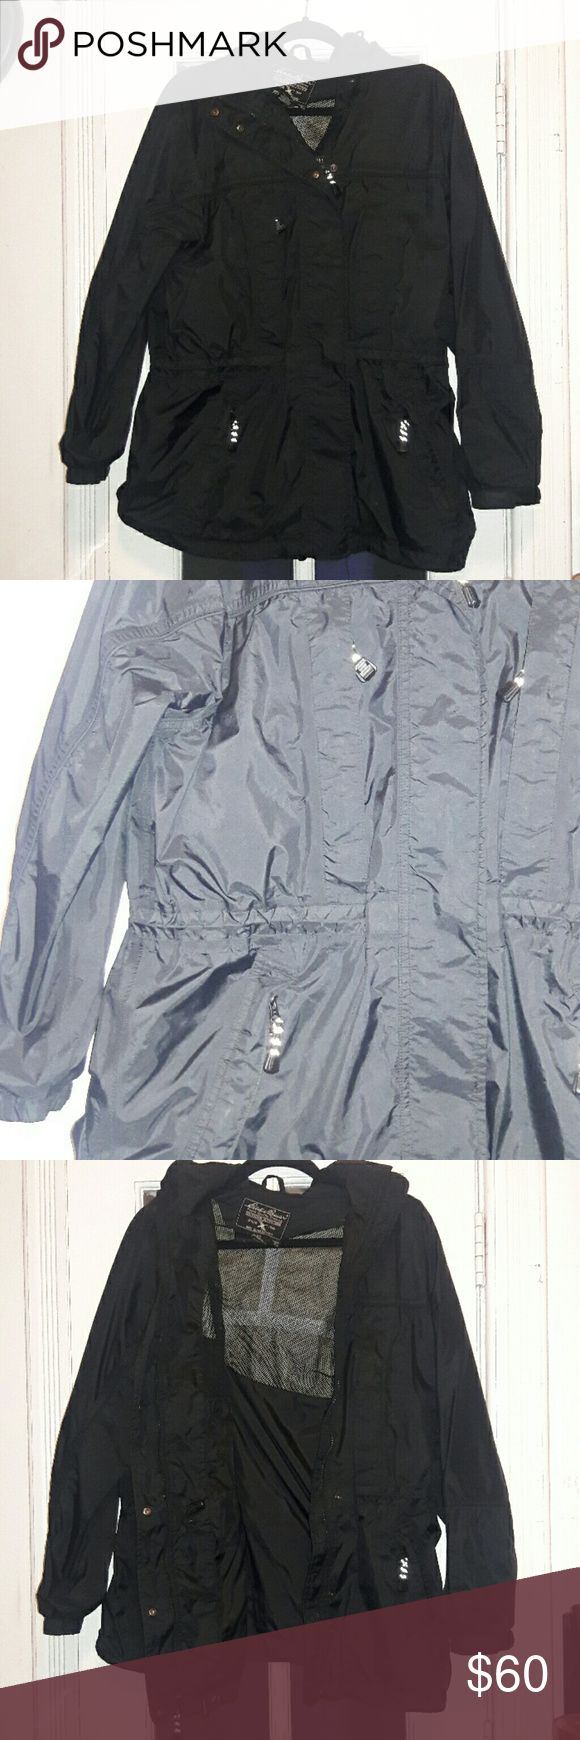 Eddie Bauer Rain Parka Womens Medium Mint condition worn once. Eddie Bauer brand black Rain Parka. There are 4 front zip pockets, the waist is adjustable, the hood is removable with a zipper, and the sleeves are adjustable. No rips holes or stains. Marked womens Medium it is a oversize fit, longer length (it covers my butt) comfy, has room for layering with another jacket. Eddie Bauer Jackets & Coats